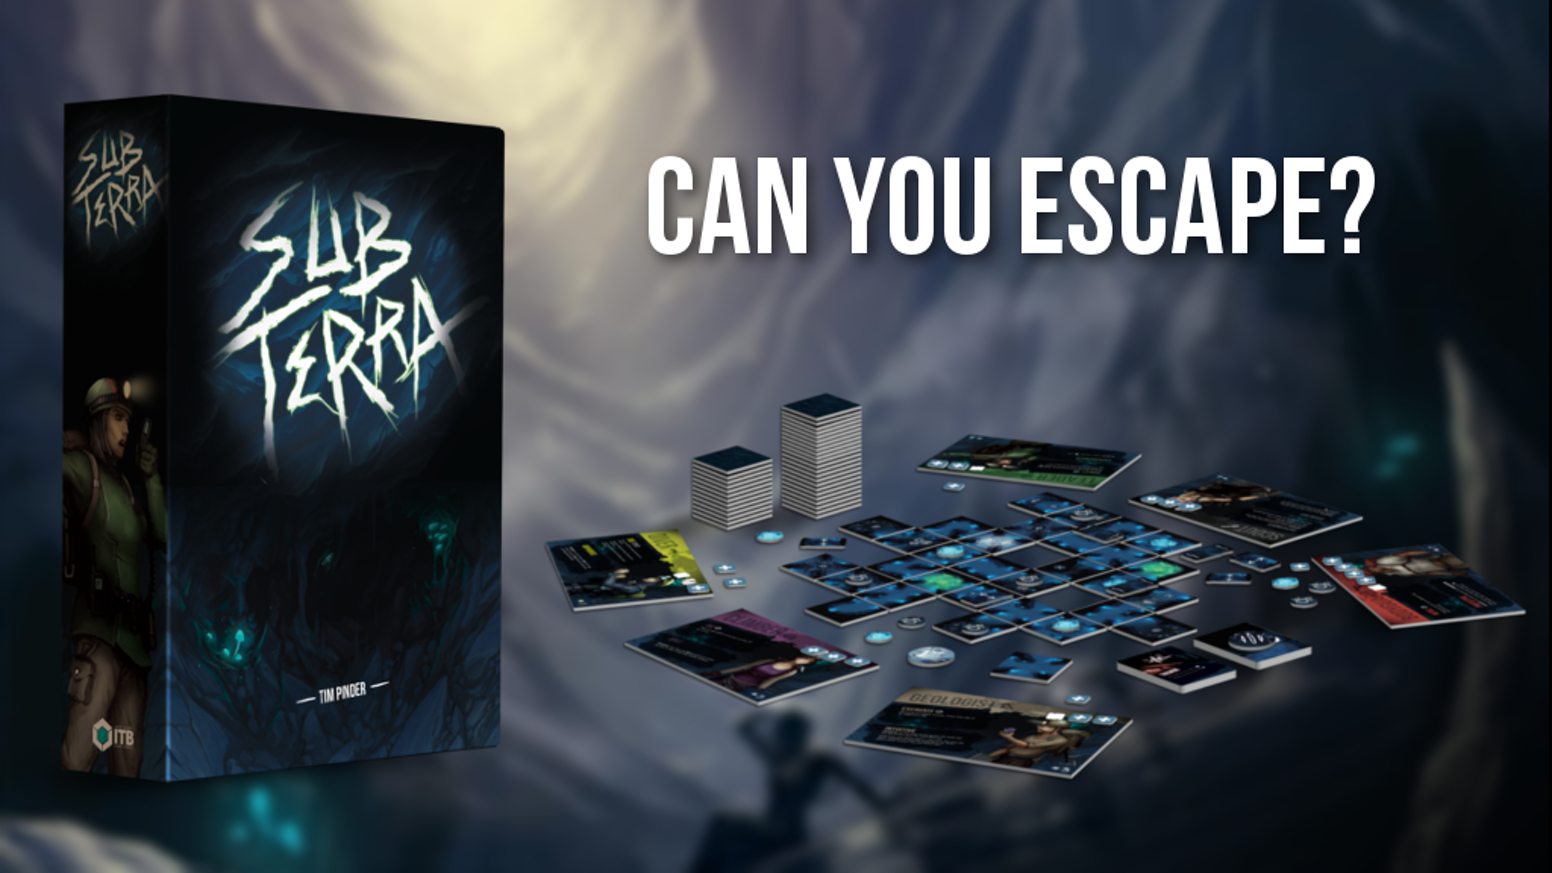 You and up to five friends are trapped deep underground. Explore quickly, avoid deadly hazards, run from the darkness. Can you escape?